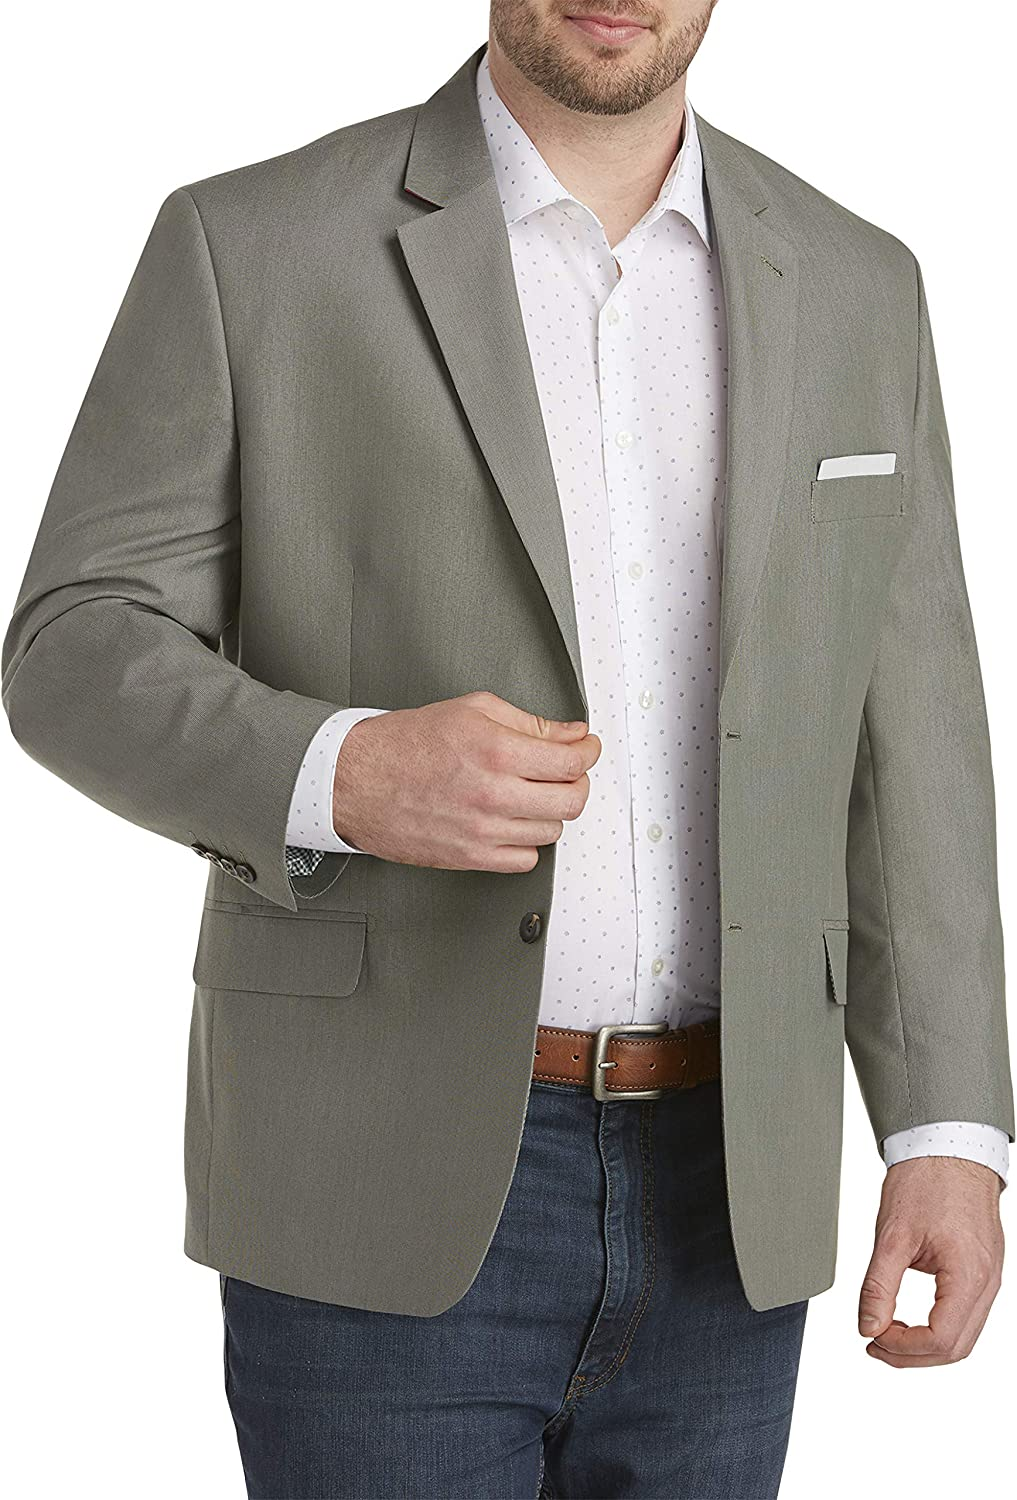 DXL Synrgy Big and Tall Jacket-Relaxer Tic-Weave Performance Sport Coat, Green